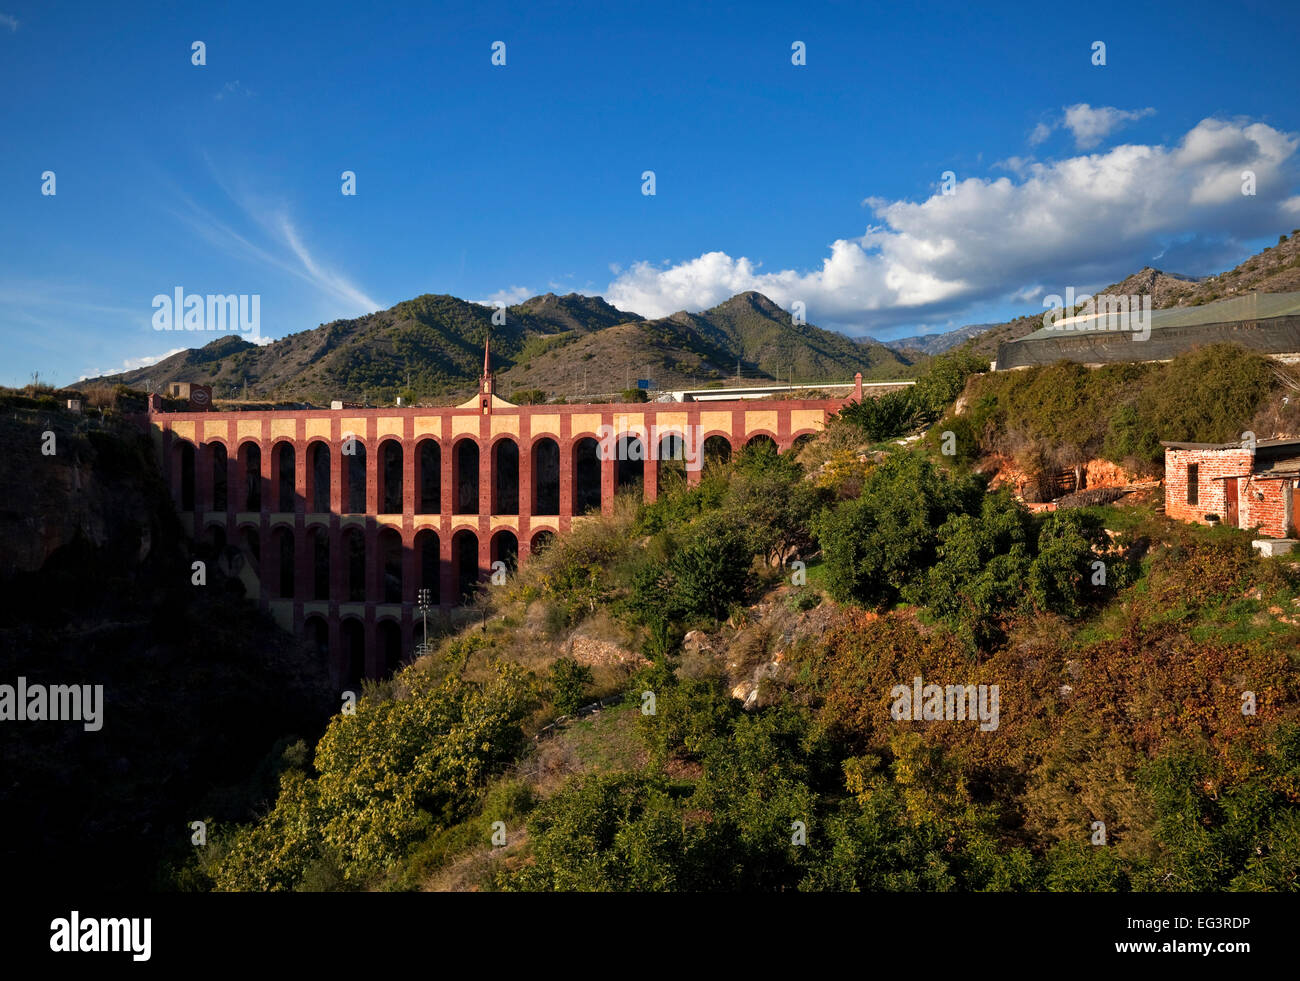 The 19th Century Eagle Aqueduct carrying water to the San Joaquin Sugar Mill, Maro-Nerja, Malaga Province Andalucia, - Stock Image